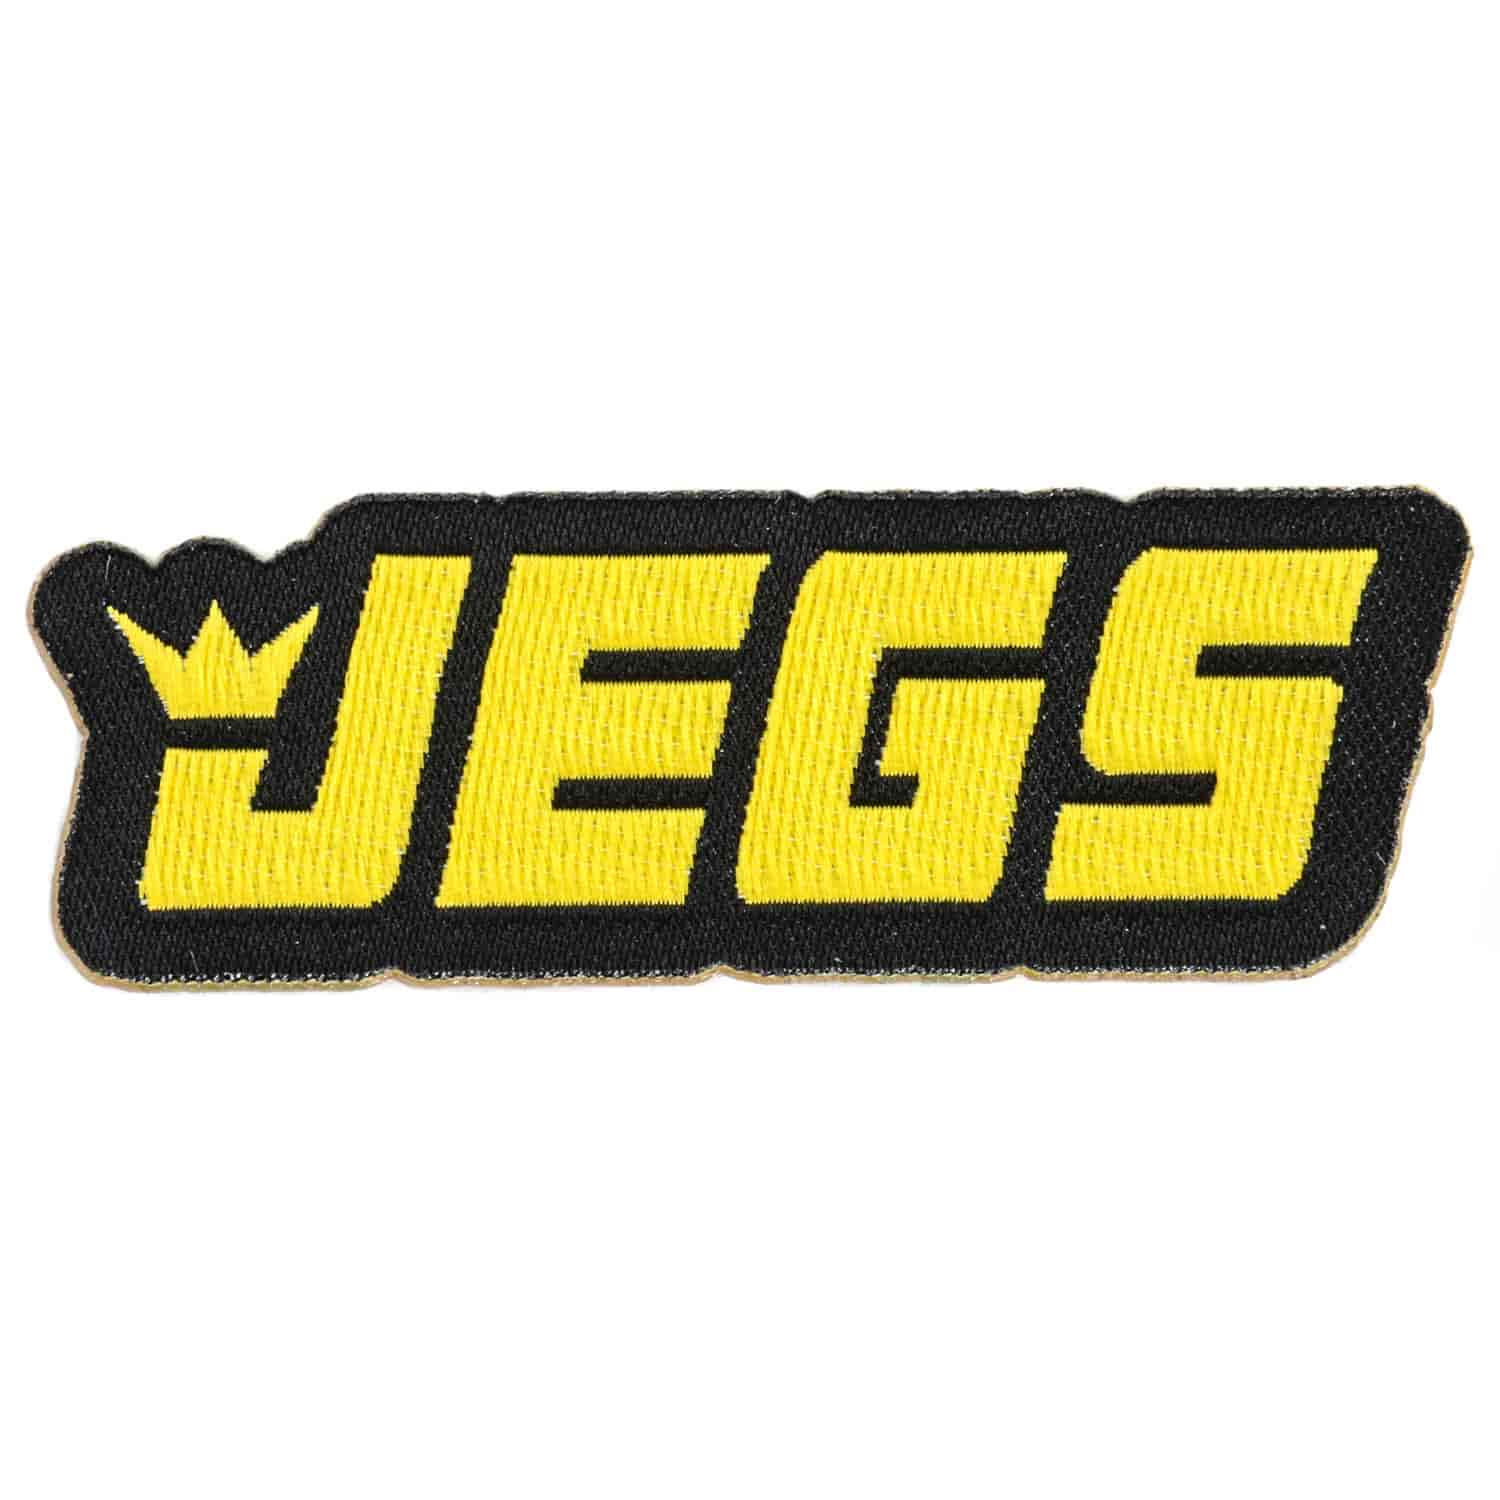 JEGS Apparel and Collectibles 15001